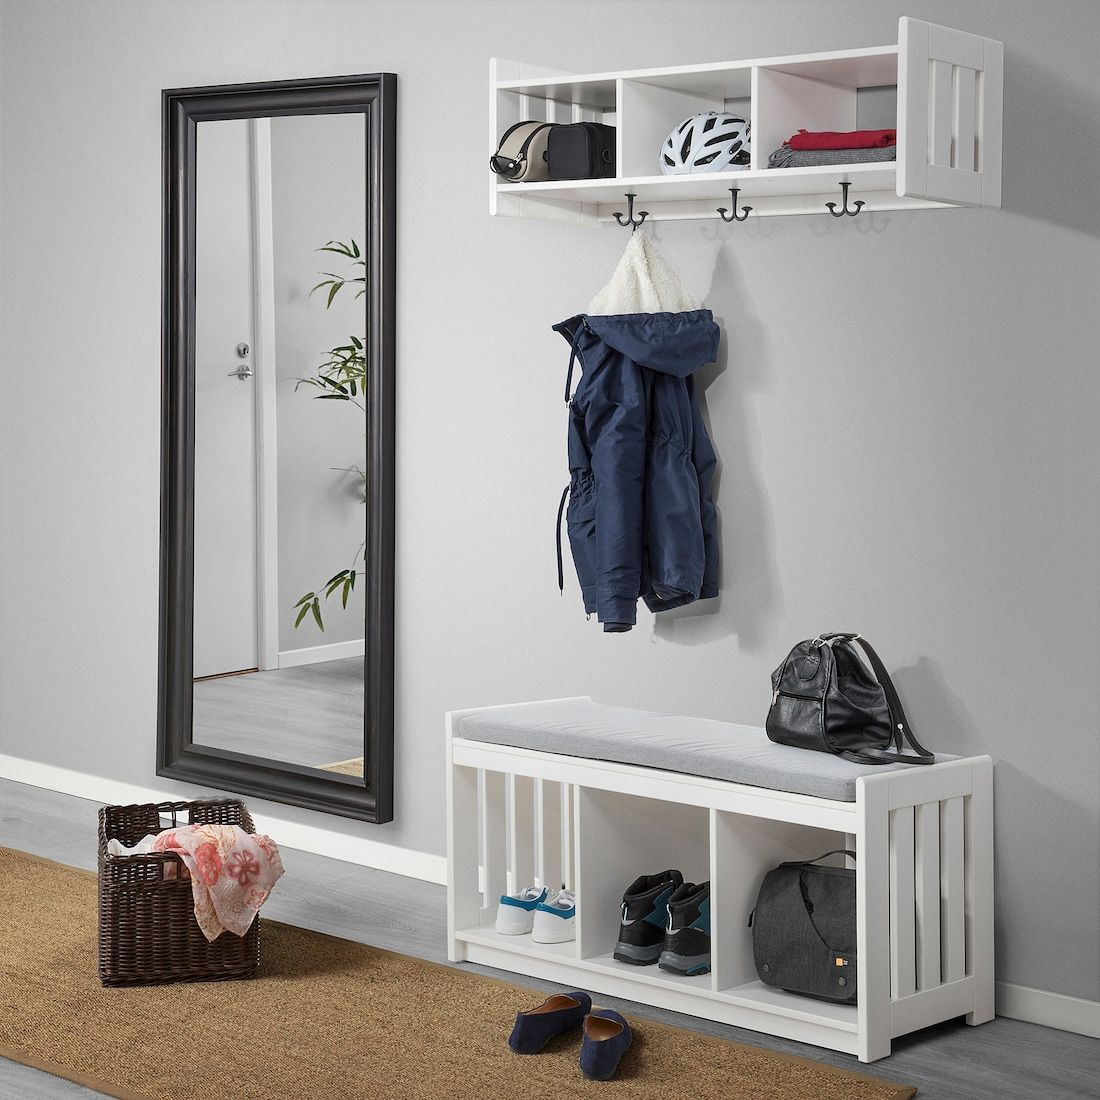 Panget Storage Bench White Ikea In 2020 Bench With Shoe Storage Storage Bench Ikea Clothing Storage